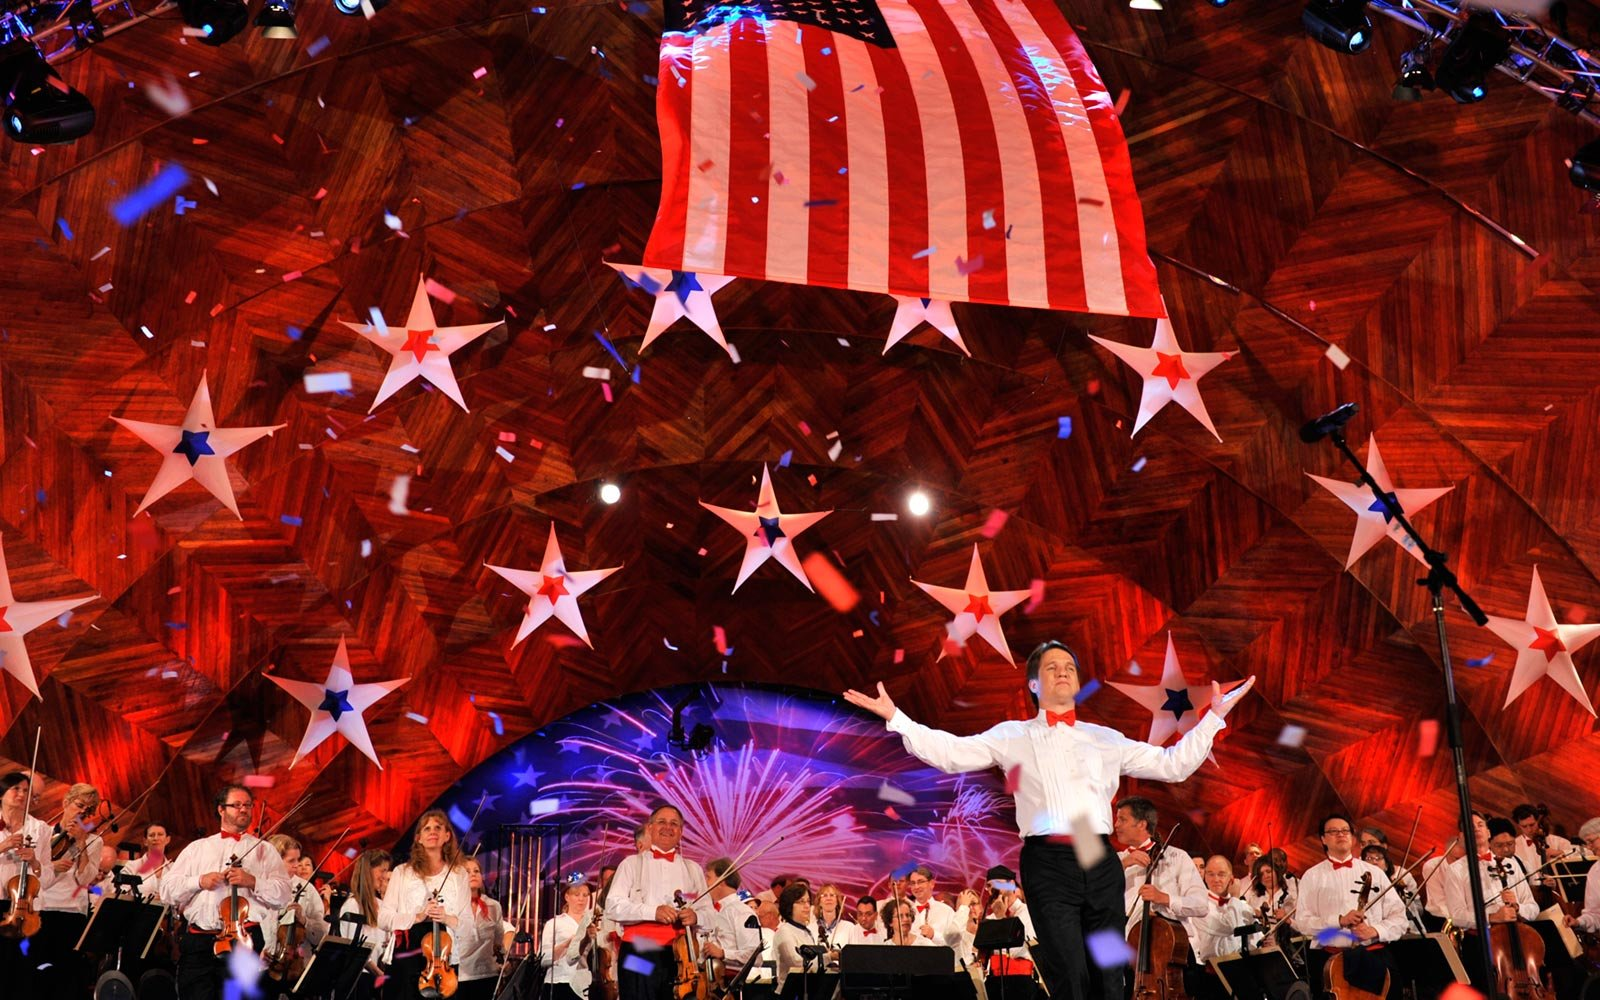 Boston Pops Orchestra, Fourth of July, Boston, Massachusetts